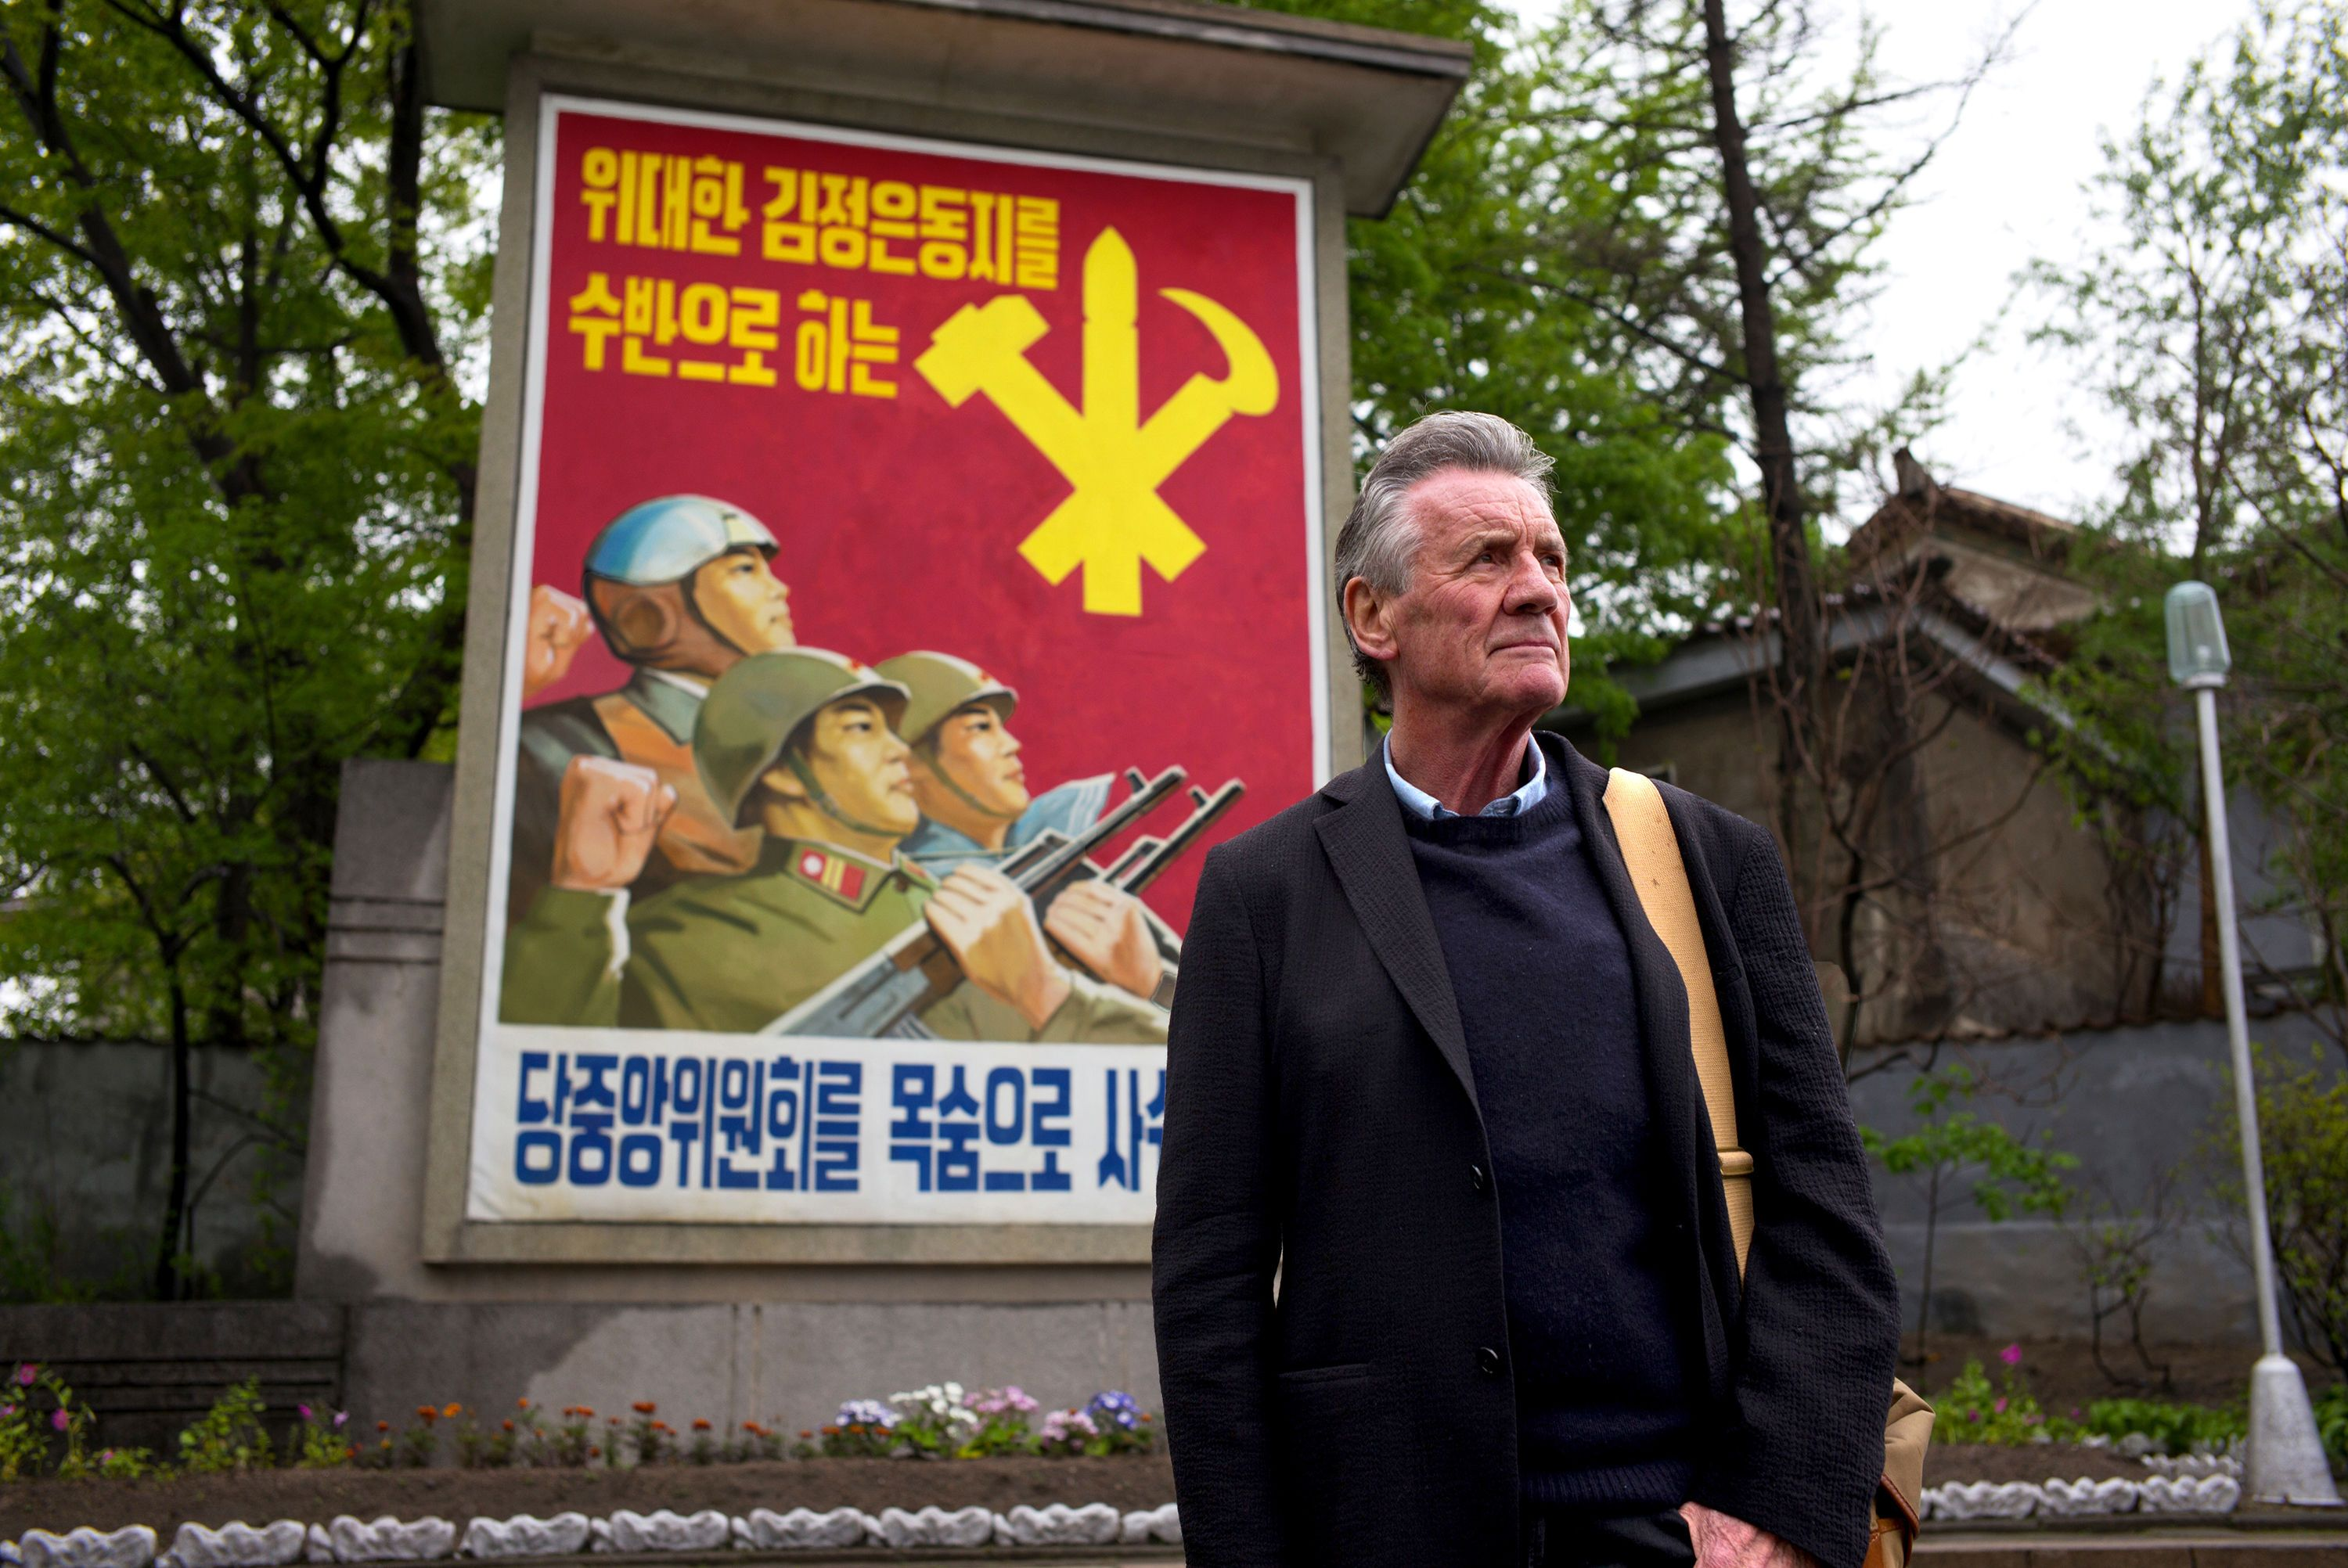 Michael Palin Called The Master Of The Travel Show But Viewers Question If We Re Getting Full Story On North Korea